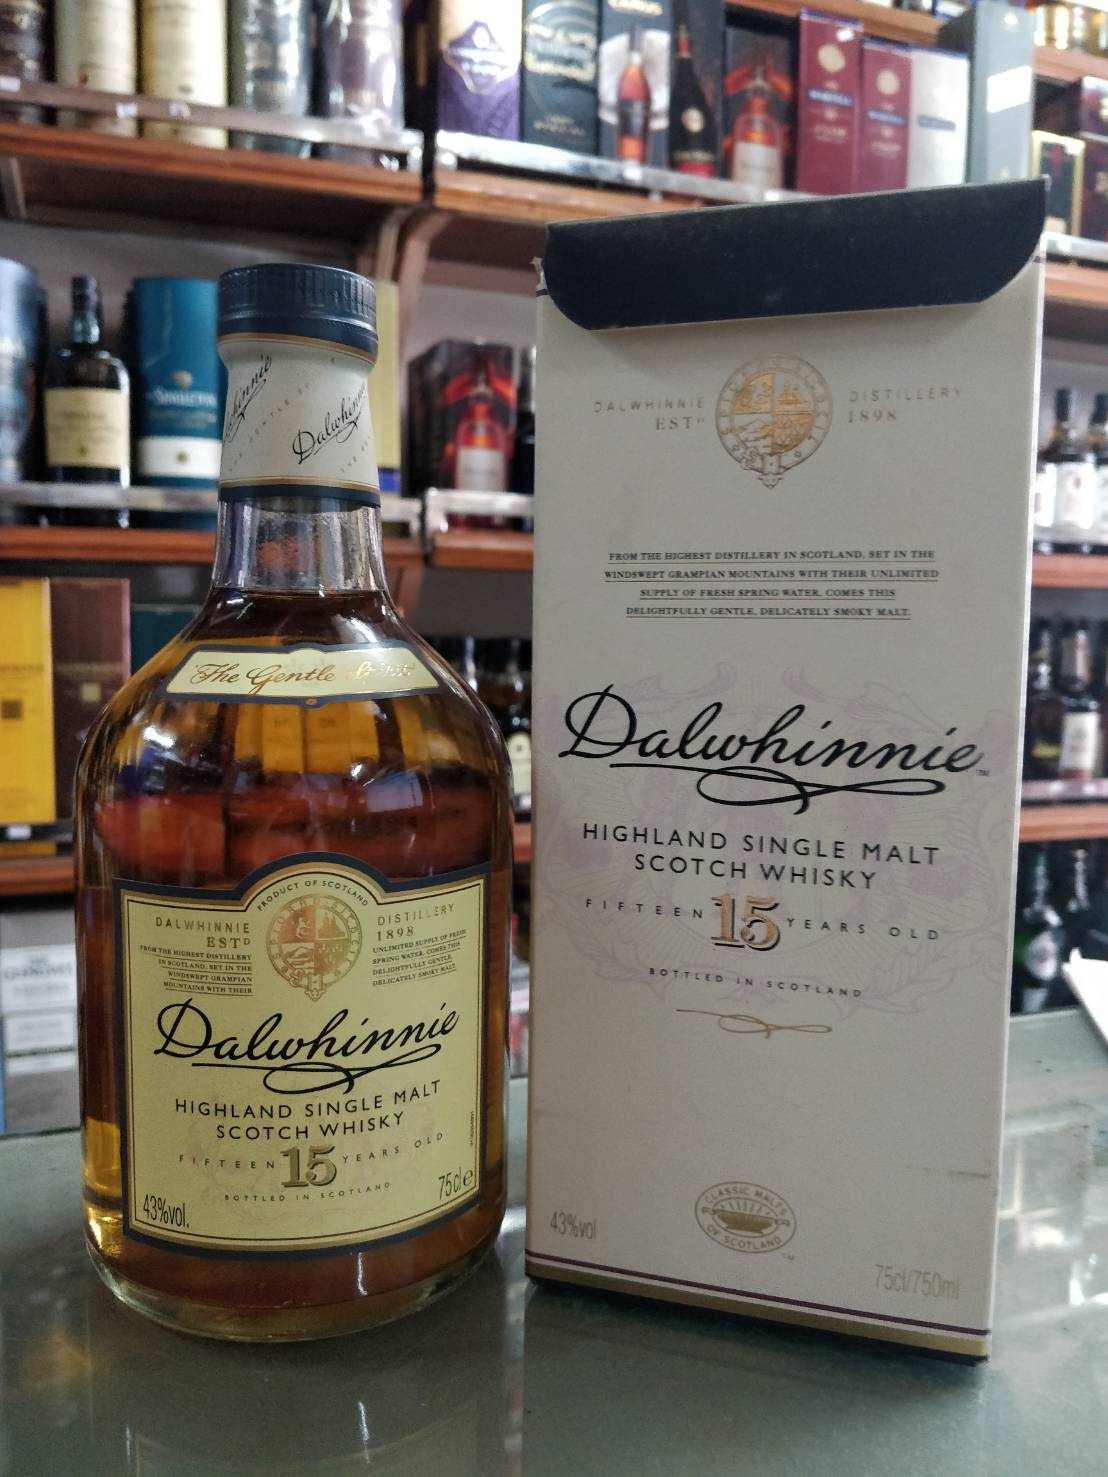 Dalwhinnie 15 Year Old 75cl